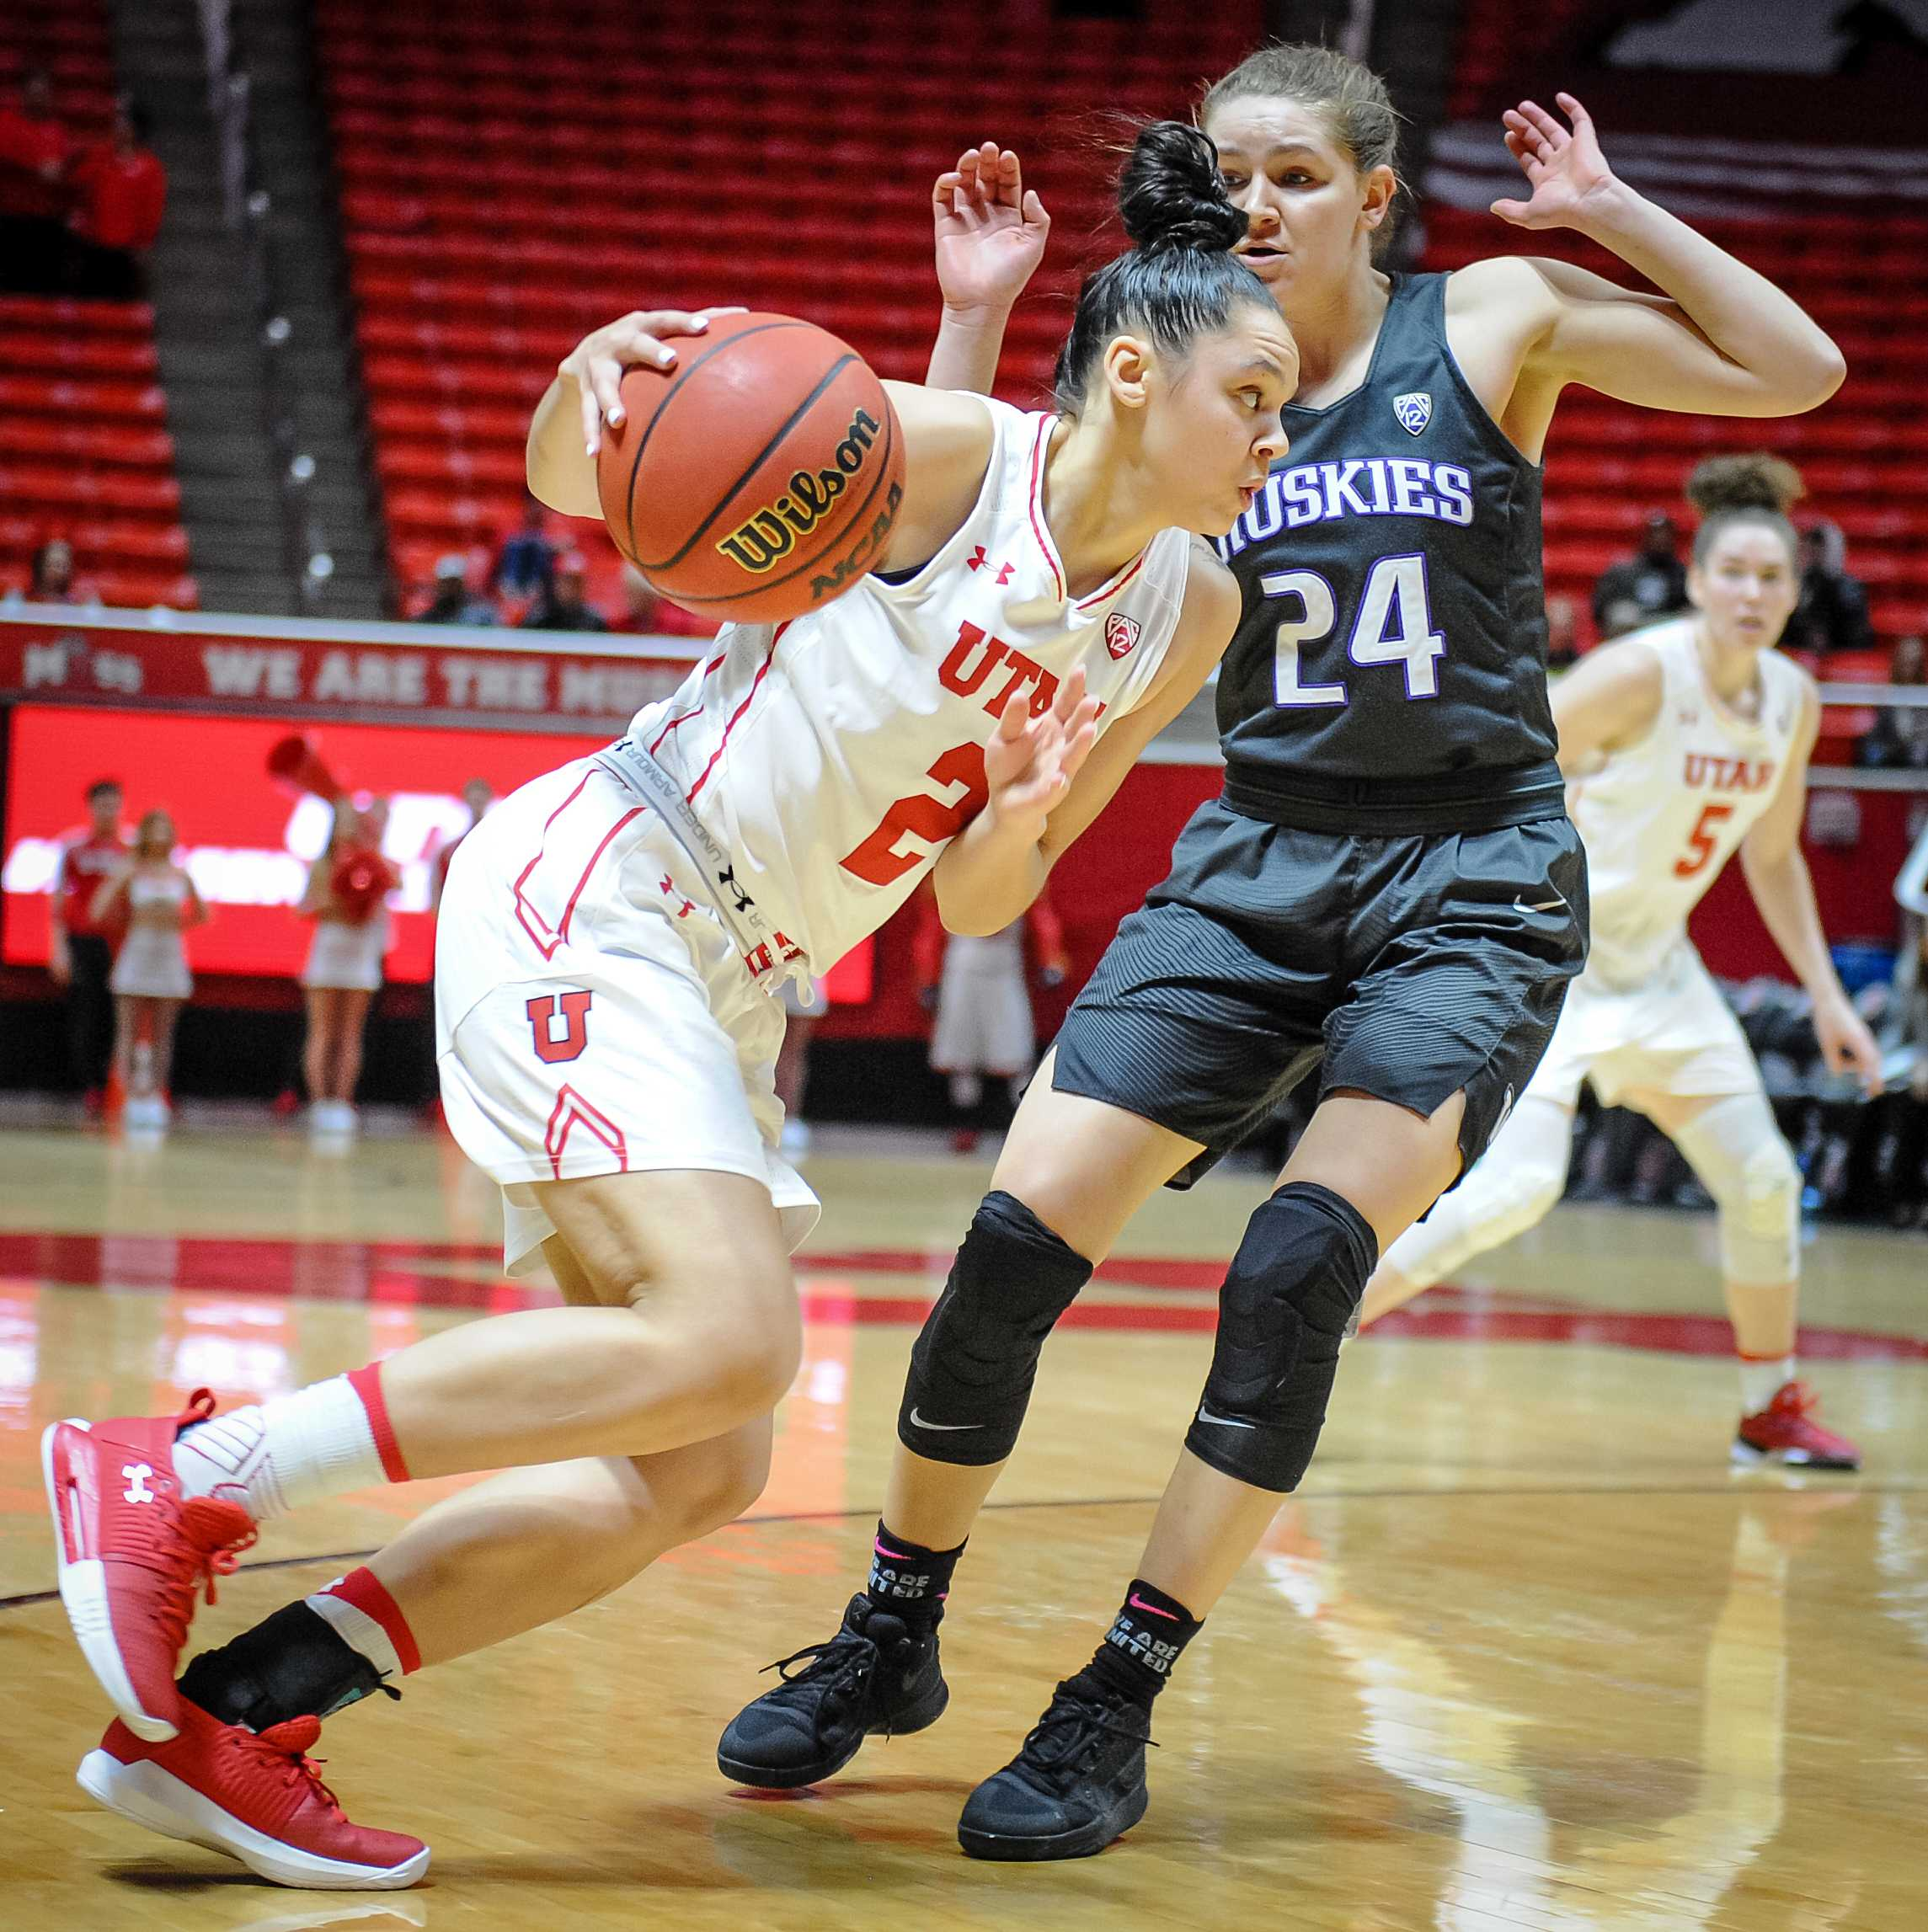 Utah Utes guard Tori Williams (2) drives past Washington Huskies guard Jenna Moser (24) as the Lady Utes take on the Lady Huskies from the University of Washington at the Huntsman Center in Salt Lake City, UT on Sunday, Feb. 18, 2018  (Photo by Adam Fondren | Daily Utah Chronicle)